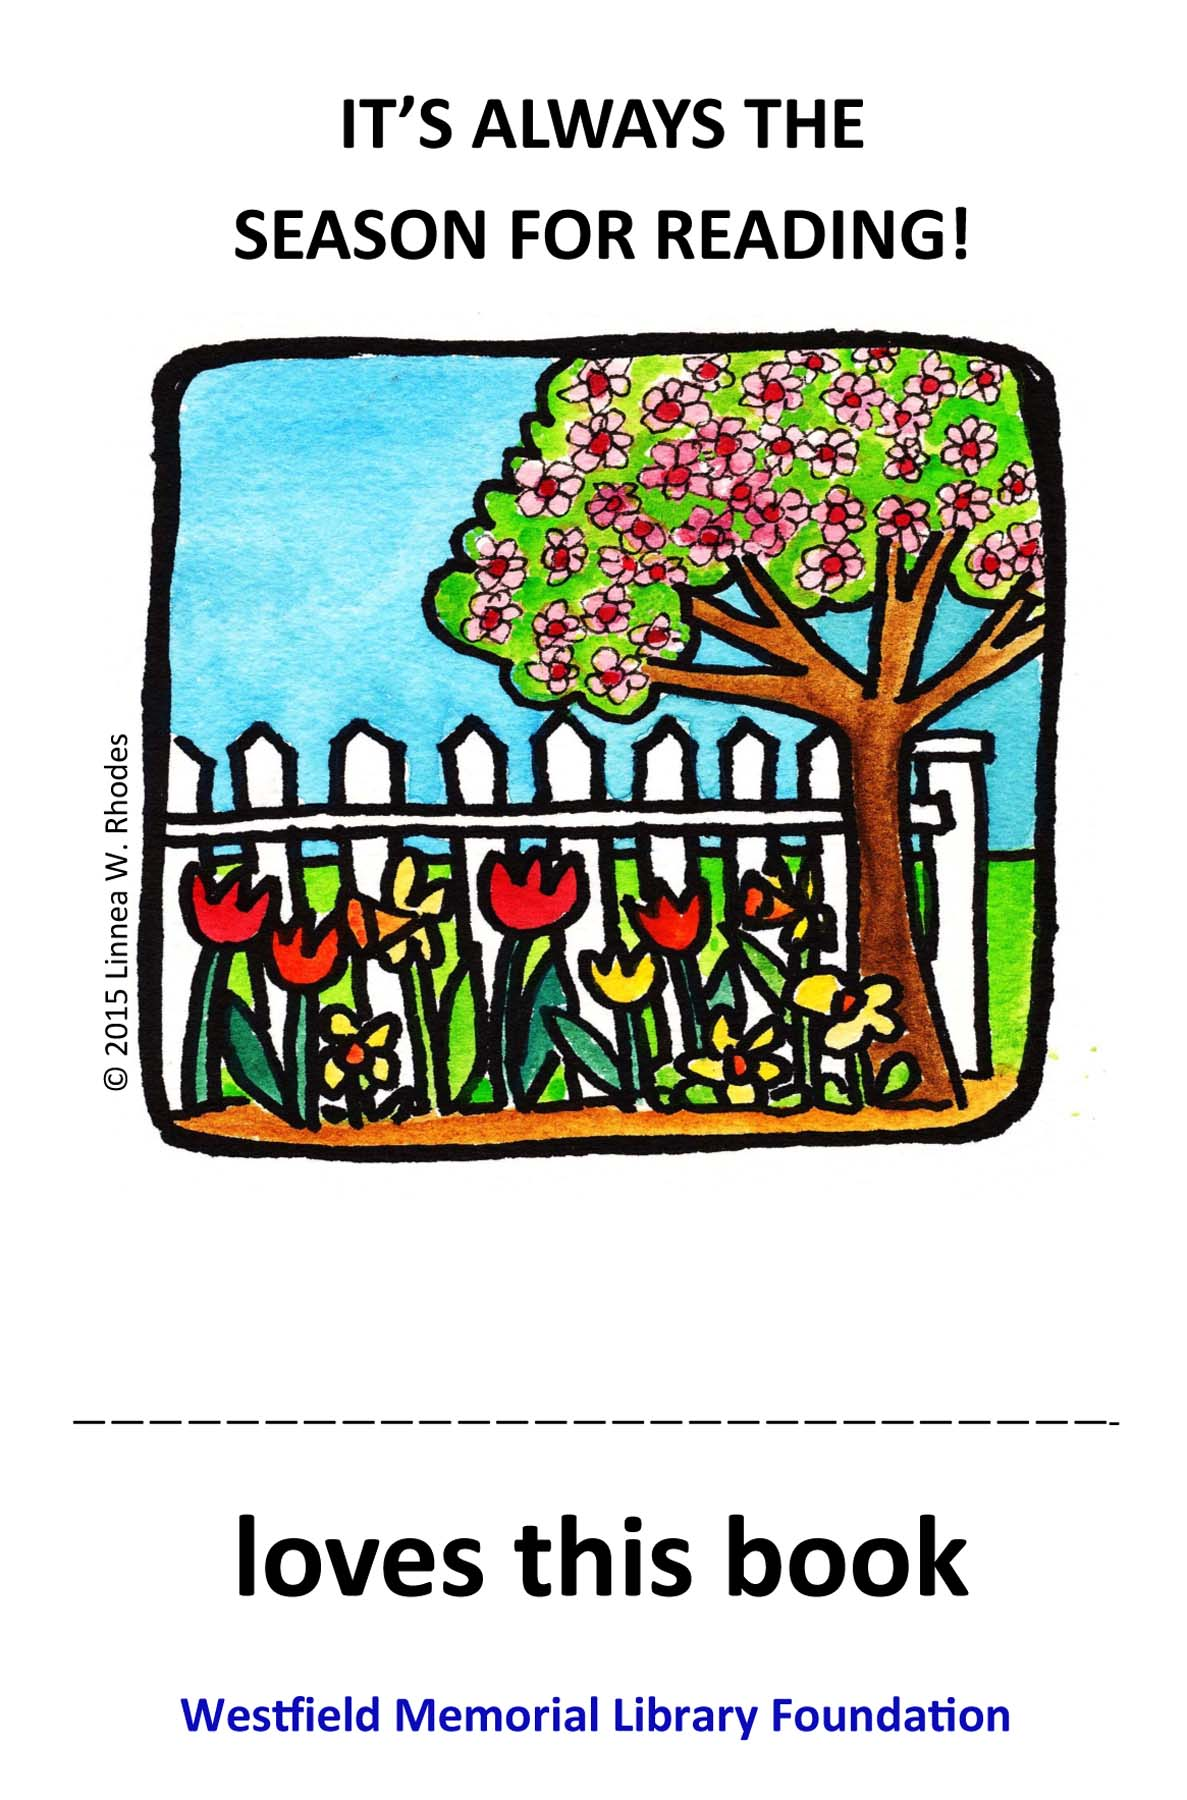 1a97b41b337bd58649db_BOOKPLATE-spring-4.jpg